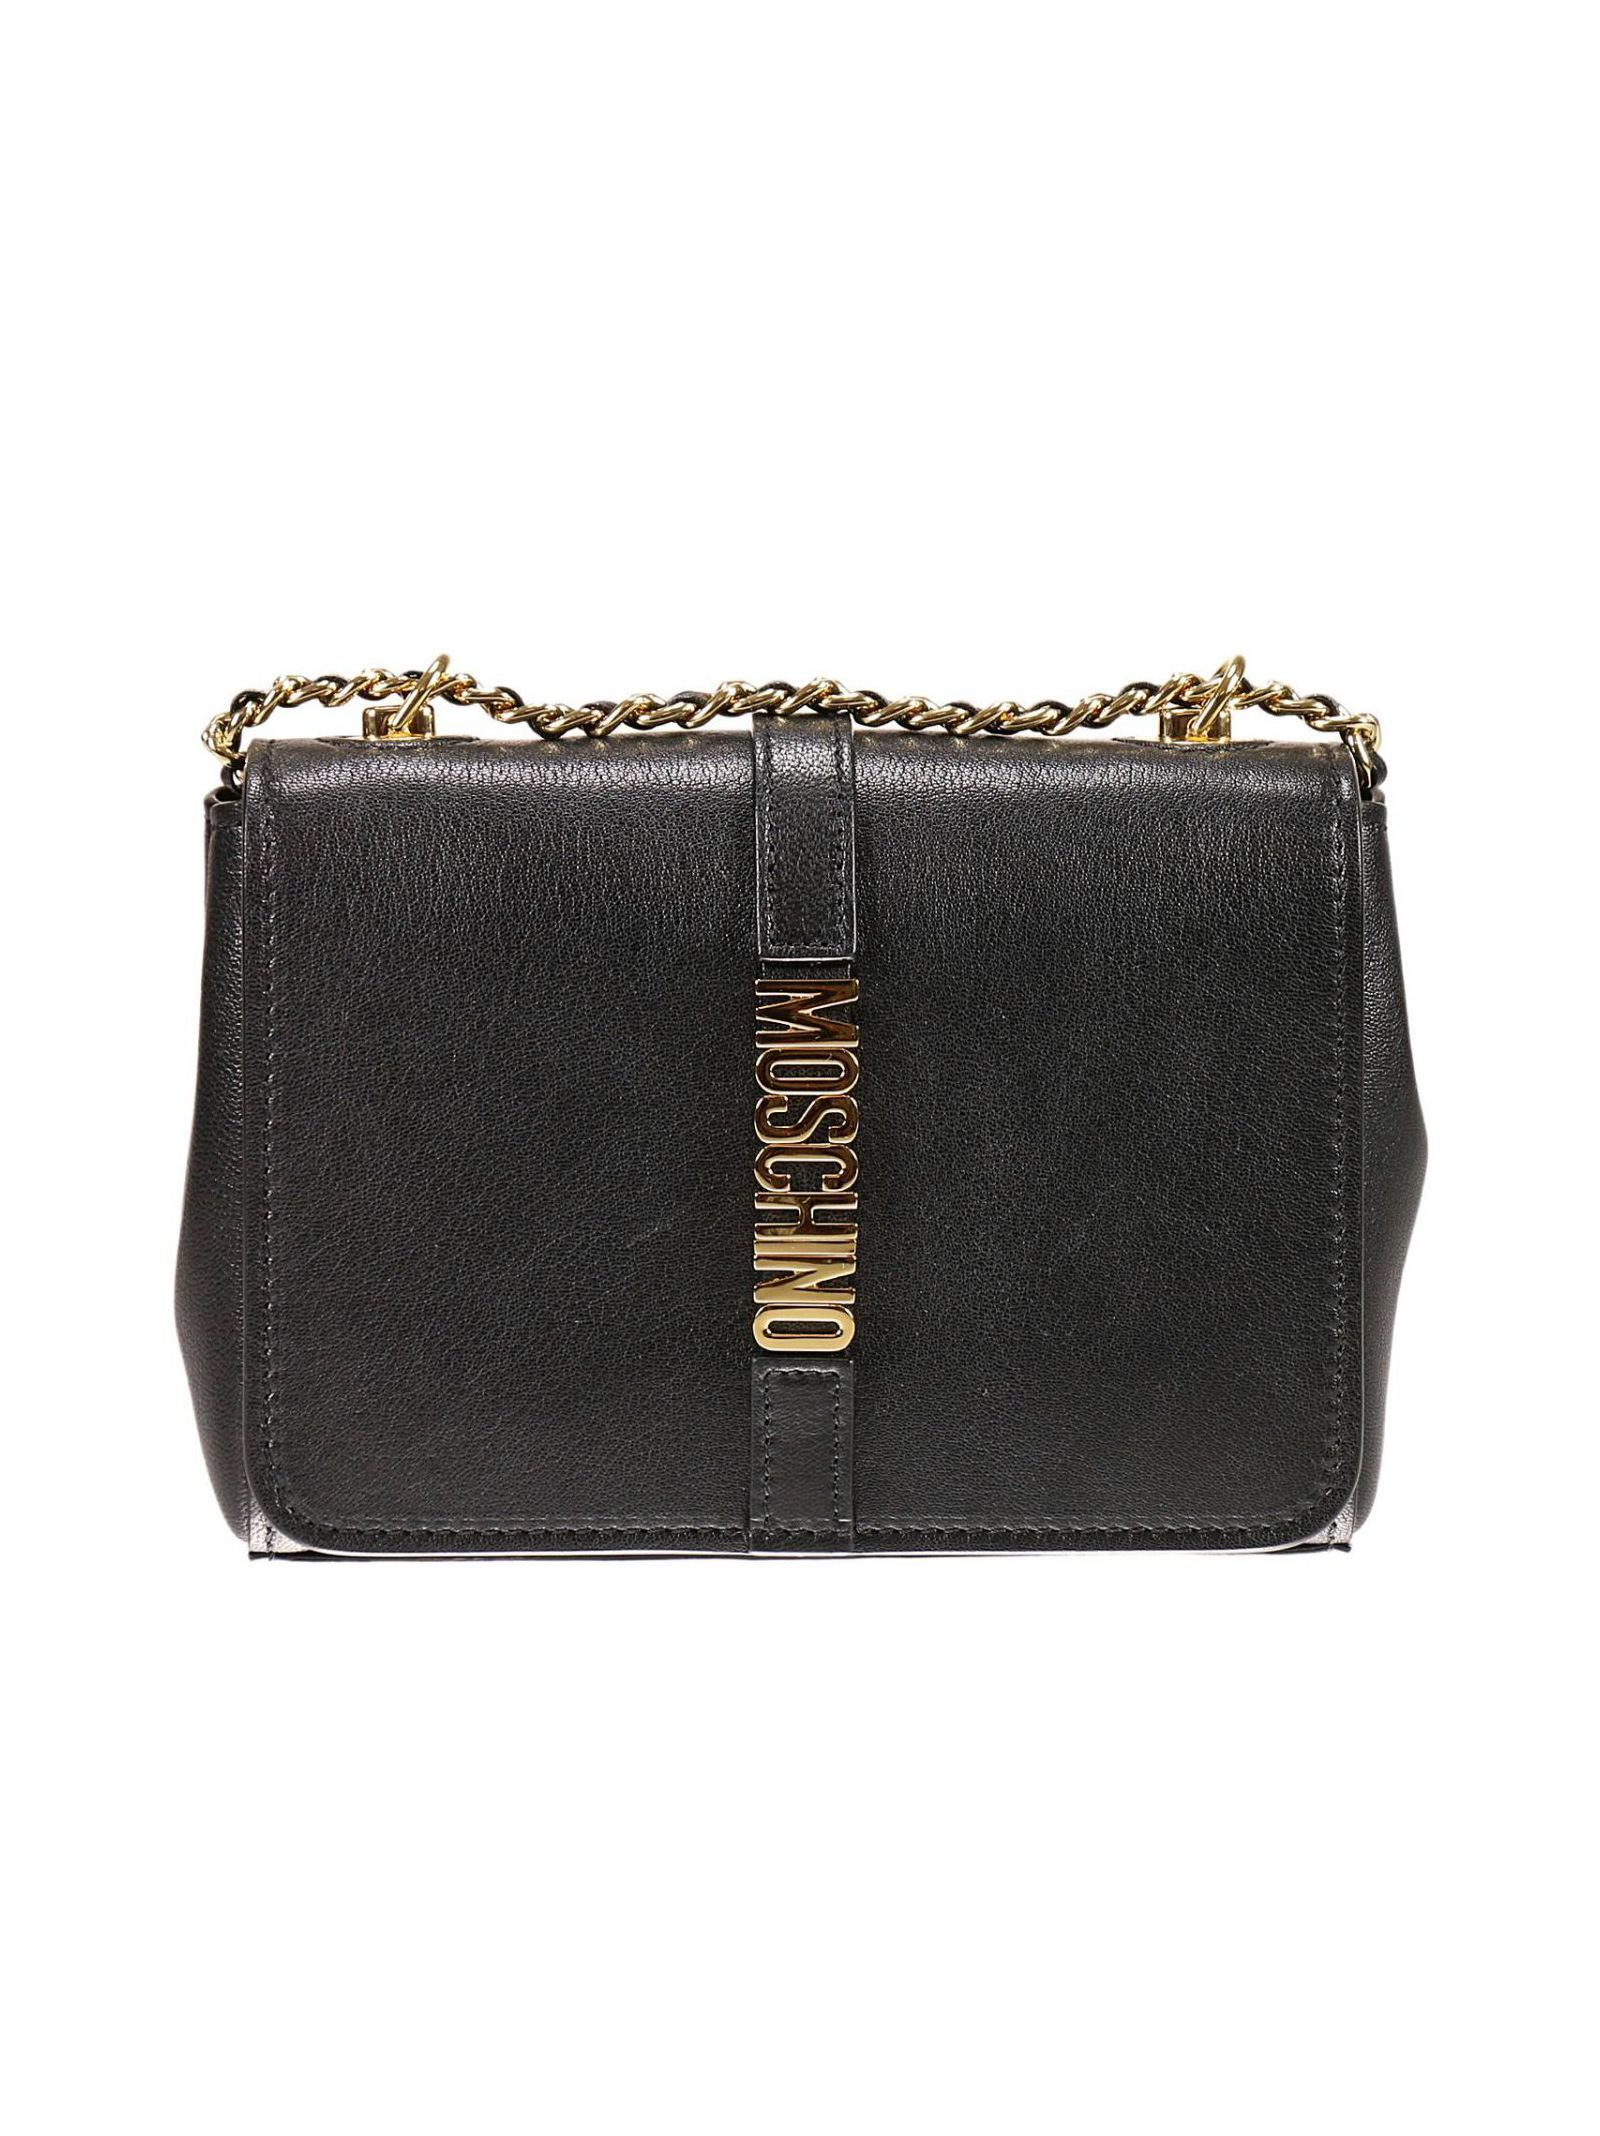 Handbag Handbag Woman Moschino Couture